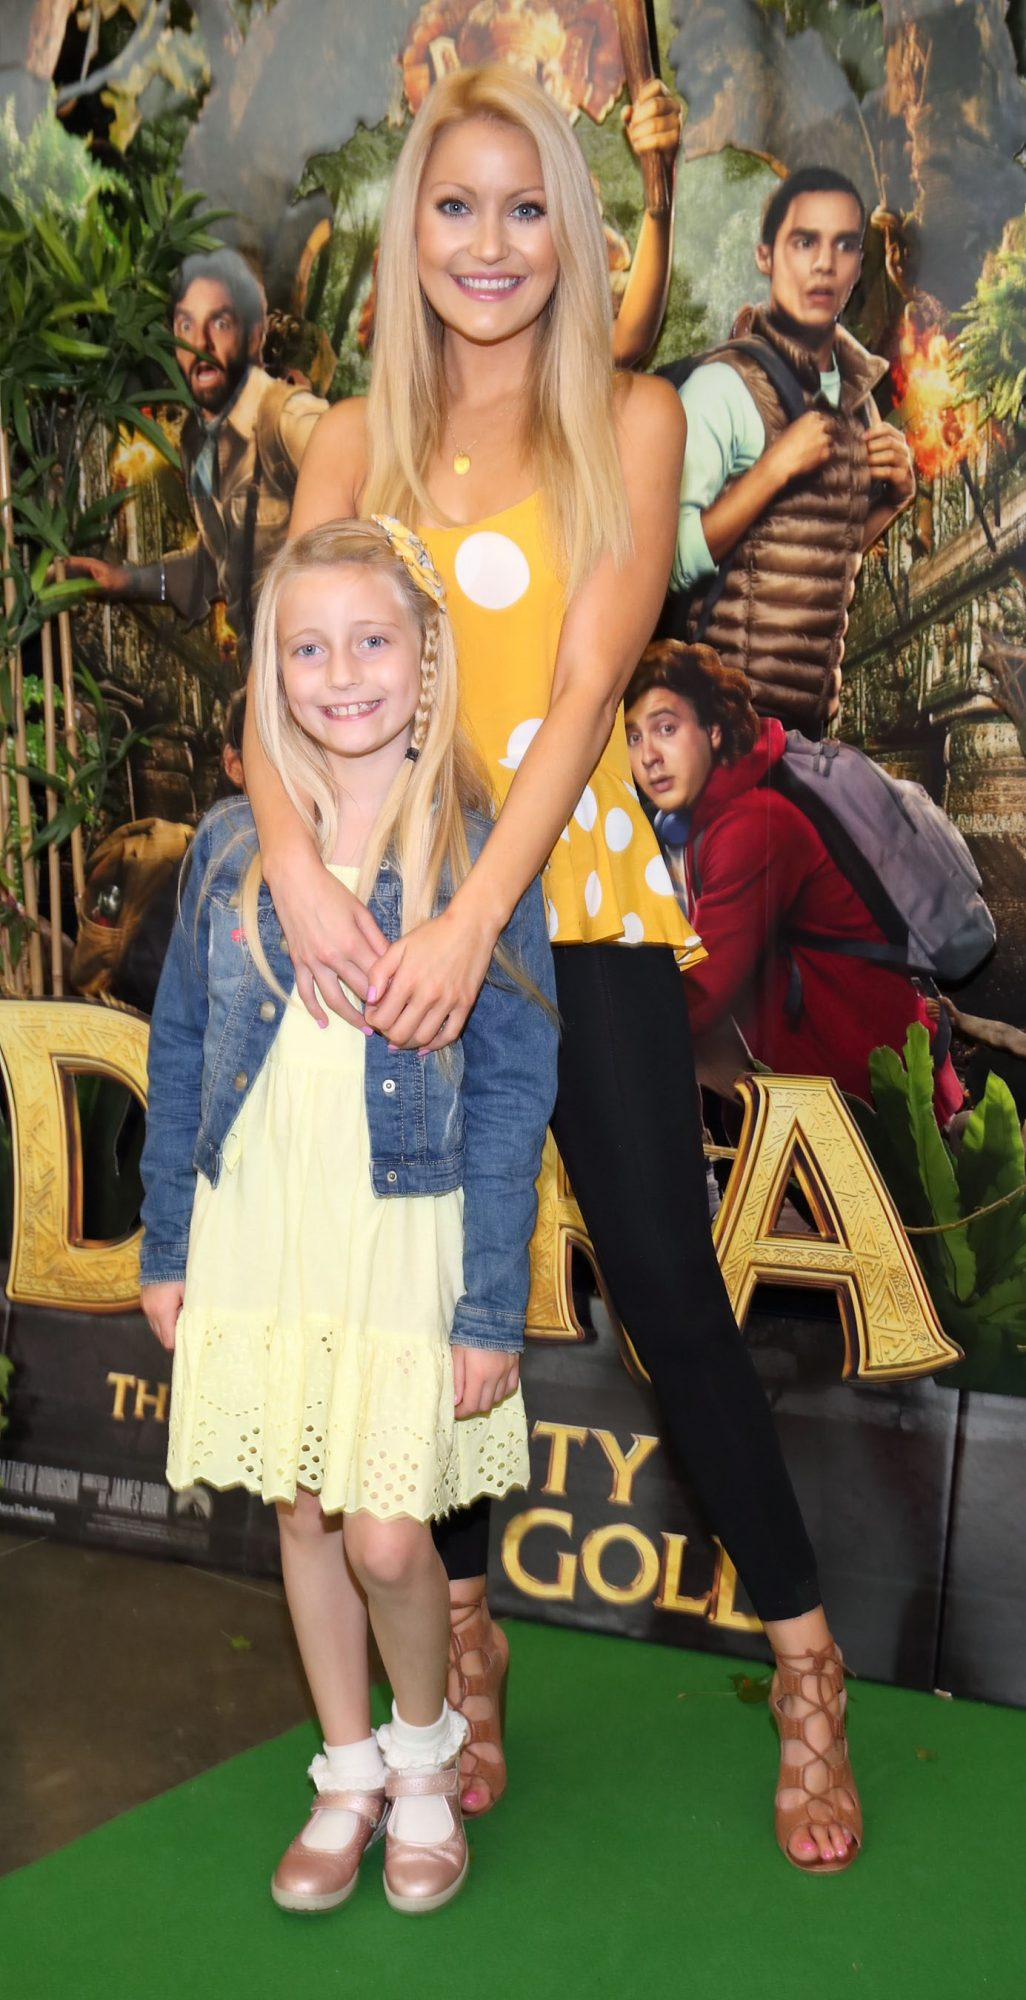 Kerri-Nicole Blanc and Kayla Blanc  at the special preview screening of Dora and the Lost City of Gold at the Odeon Cinema in Point Square,Dublin. Pic Brian McEvoy Photography